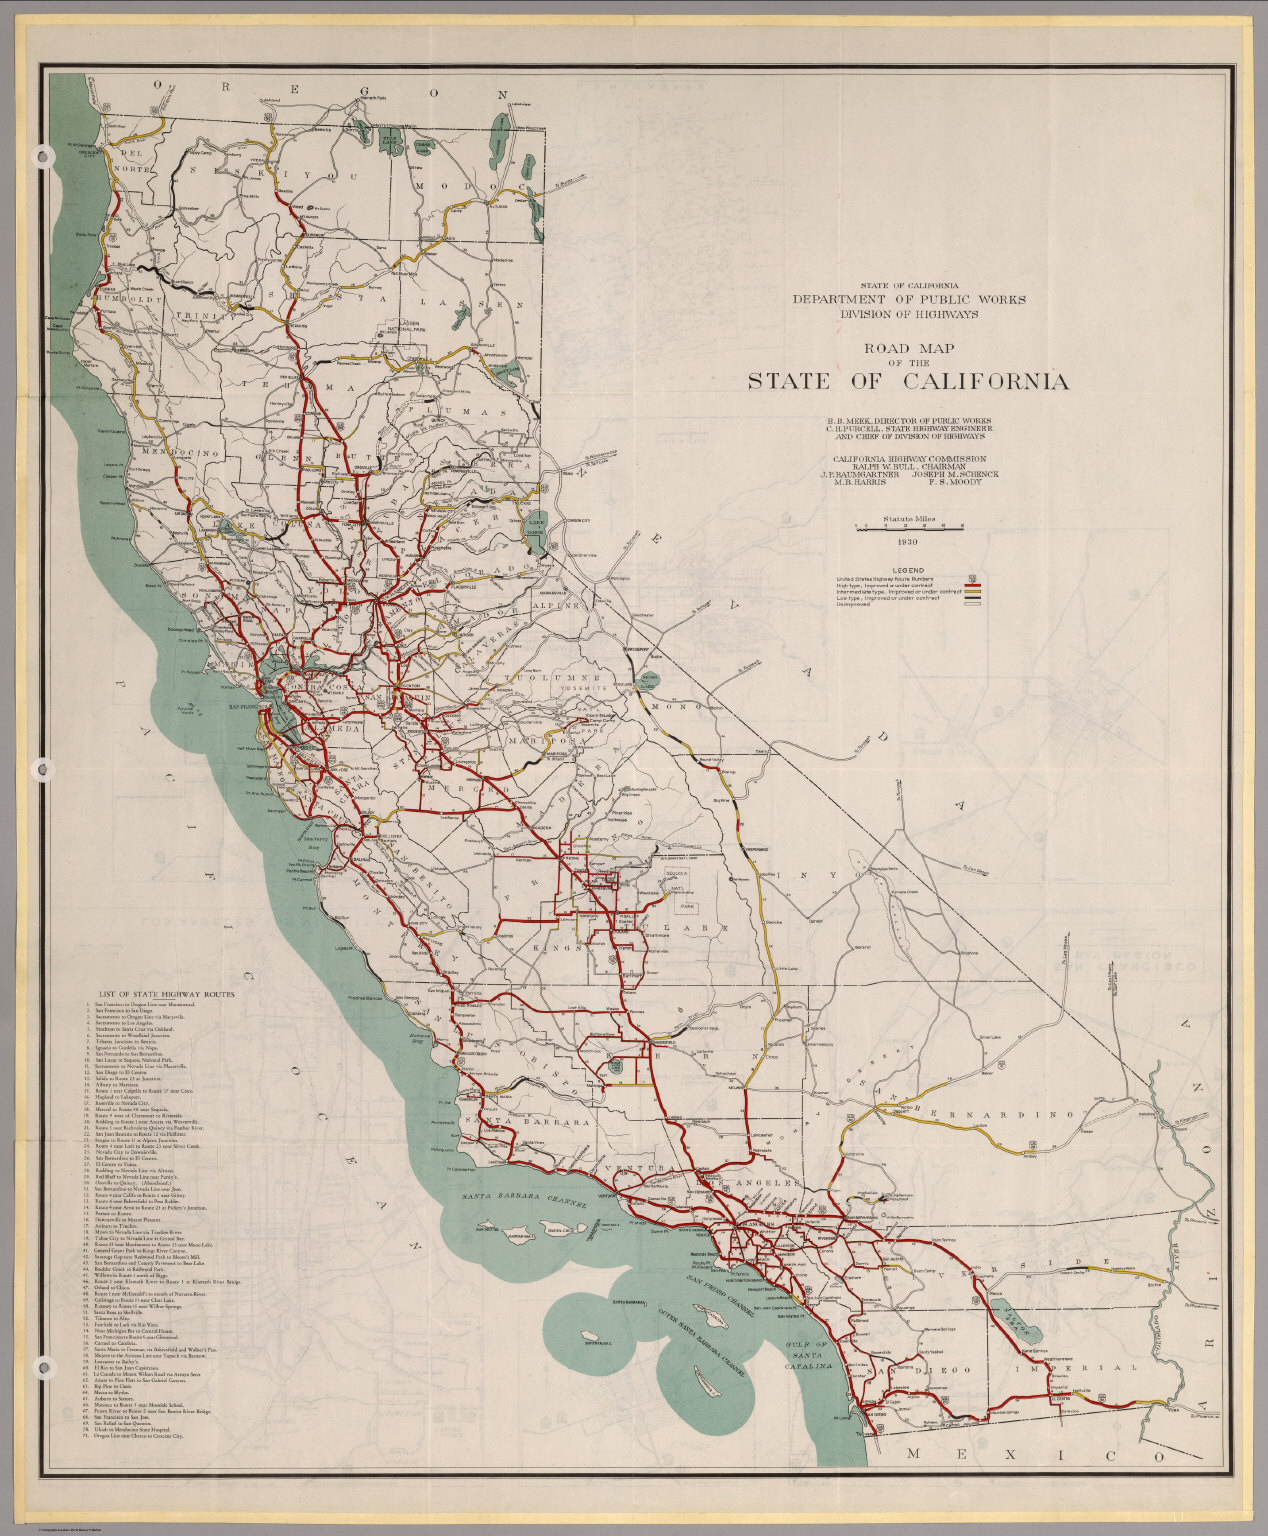 Road Map Of The State Of California David Rumsey - Map of the state of california